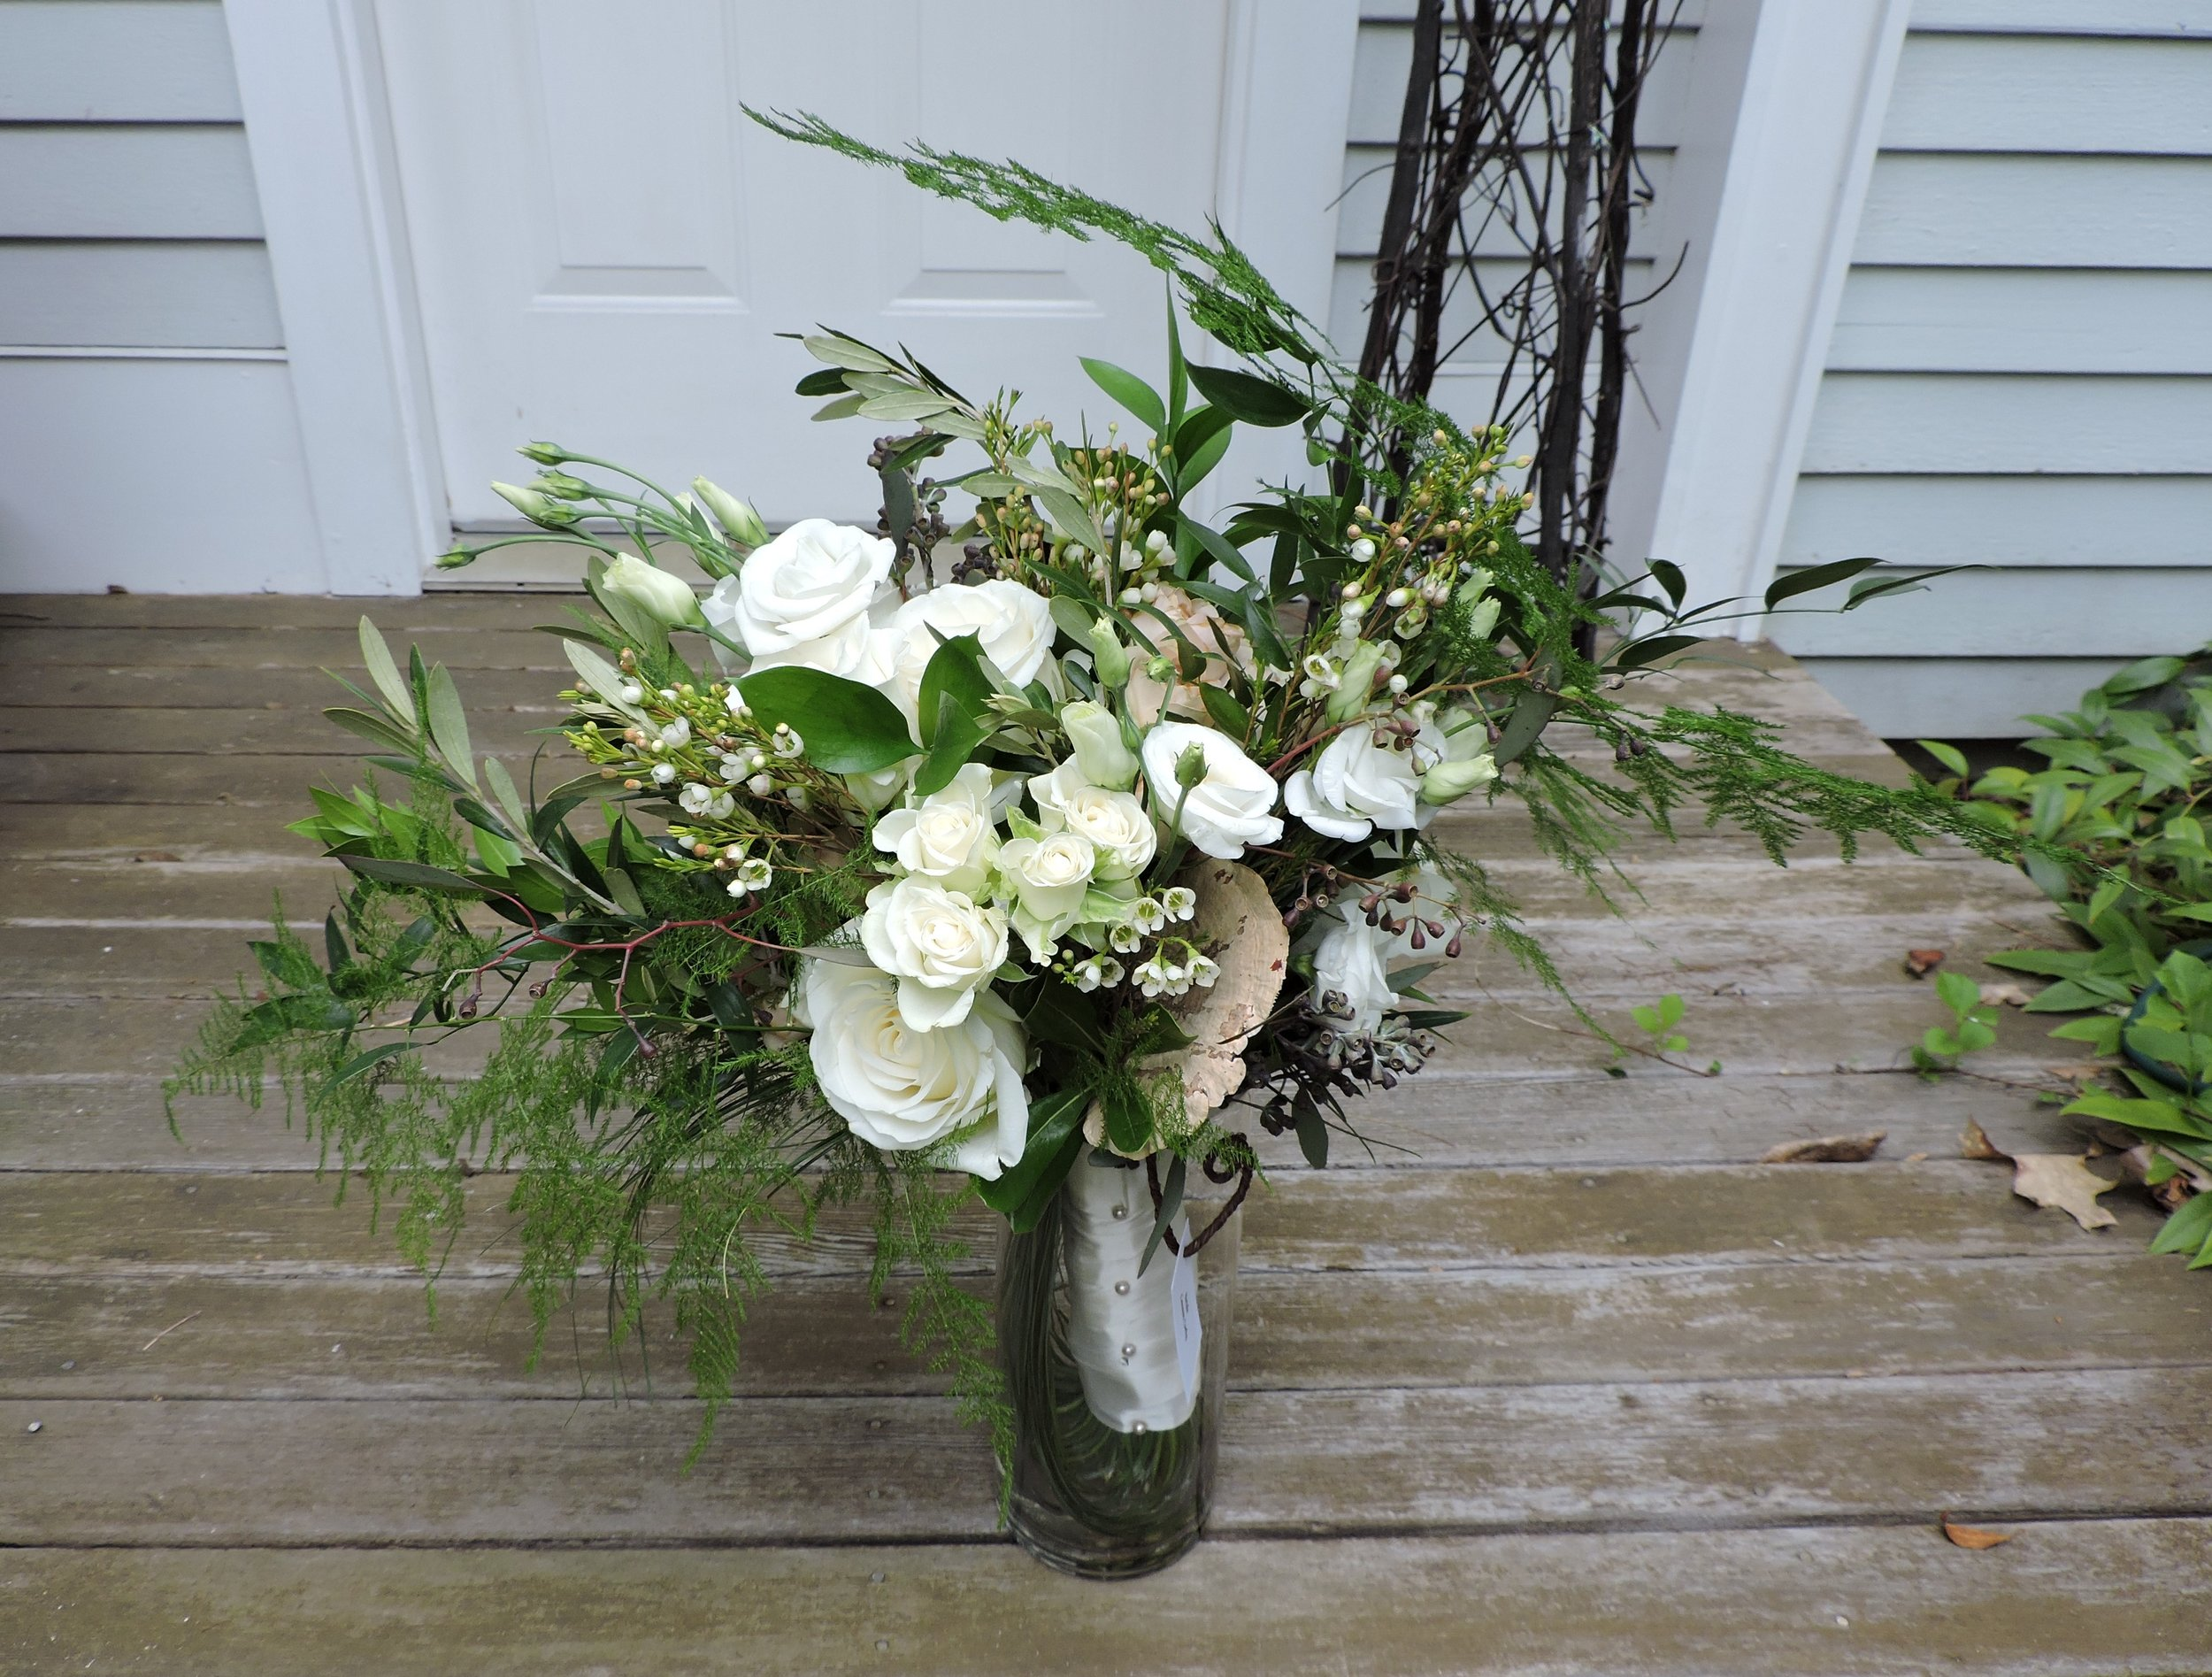 Assorted foliage and flowers combined for natural bouquet  #floralnotes #floralnotesacton